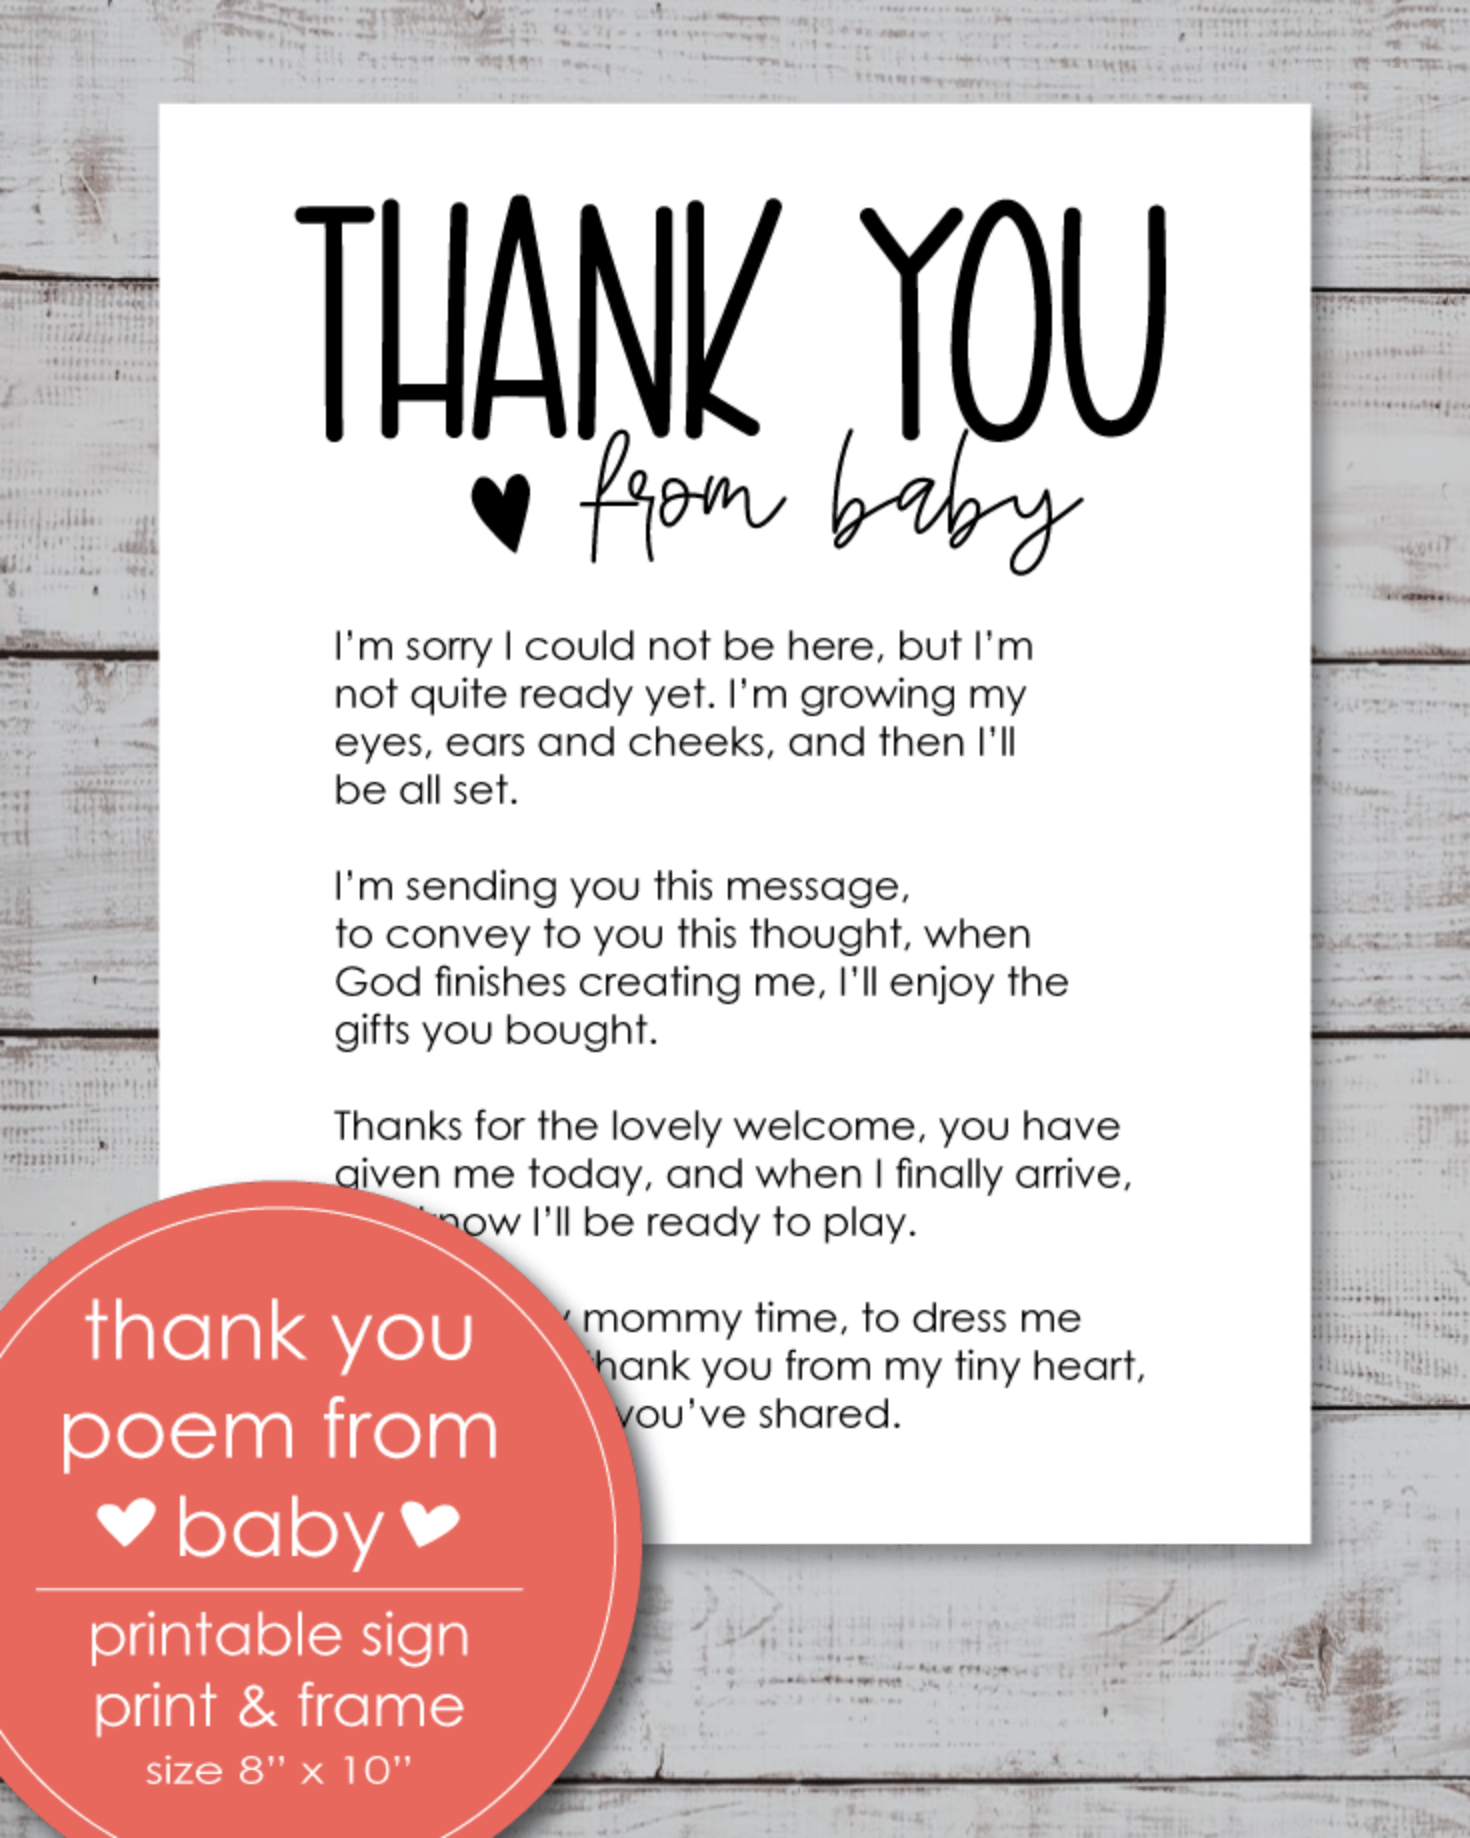 "Printable Thank You Poem From Baby 8x10"" Sign"